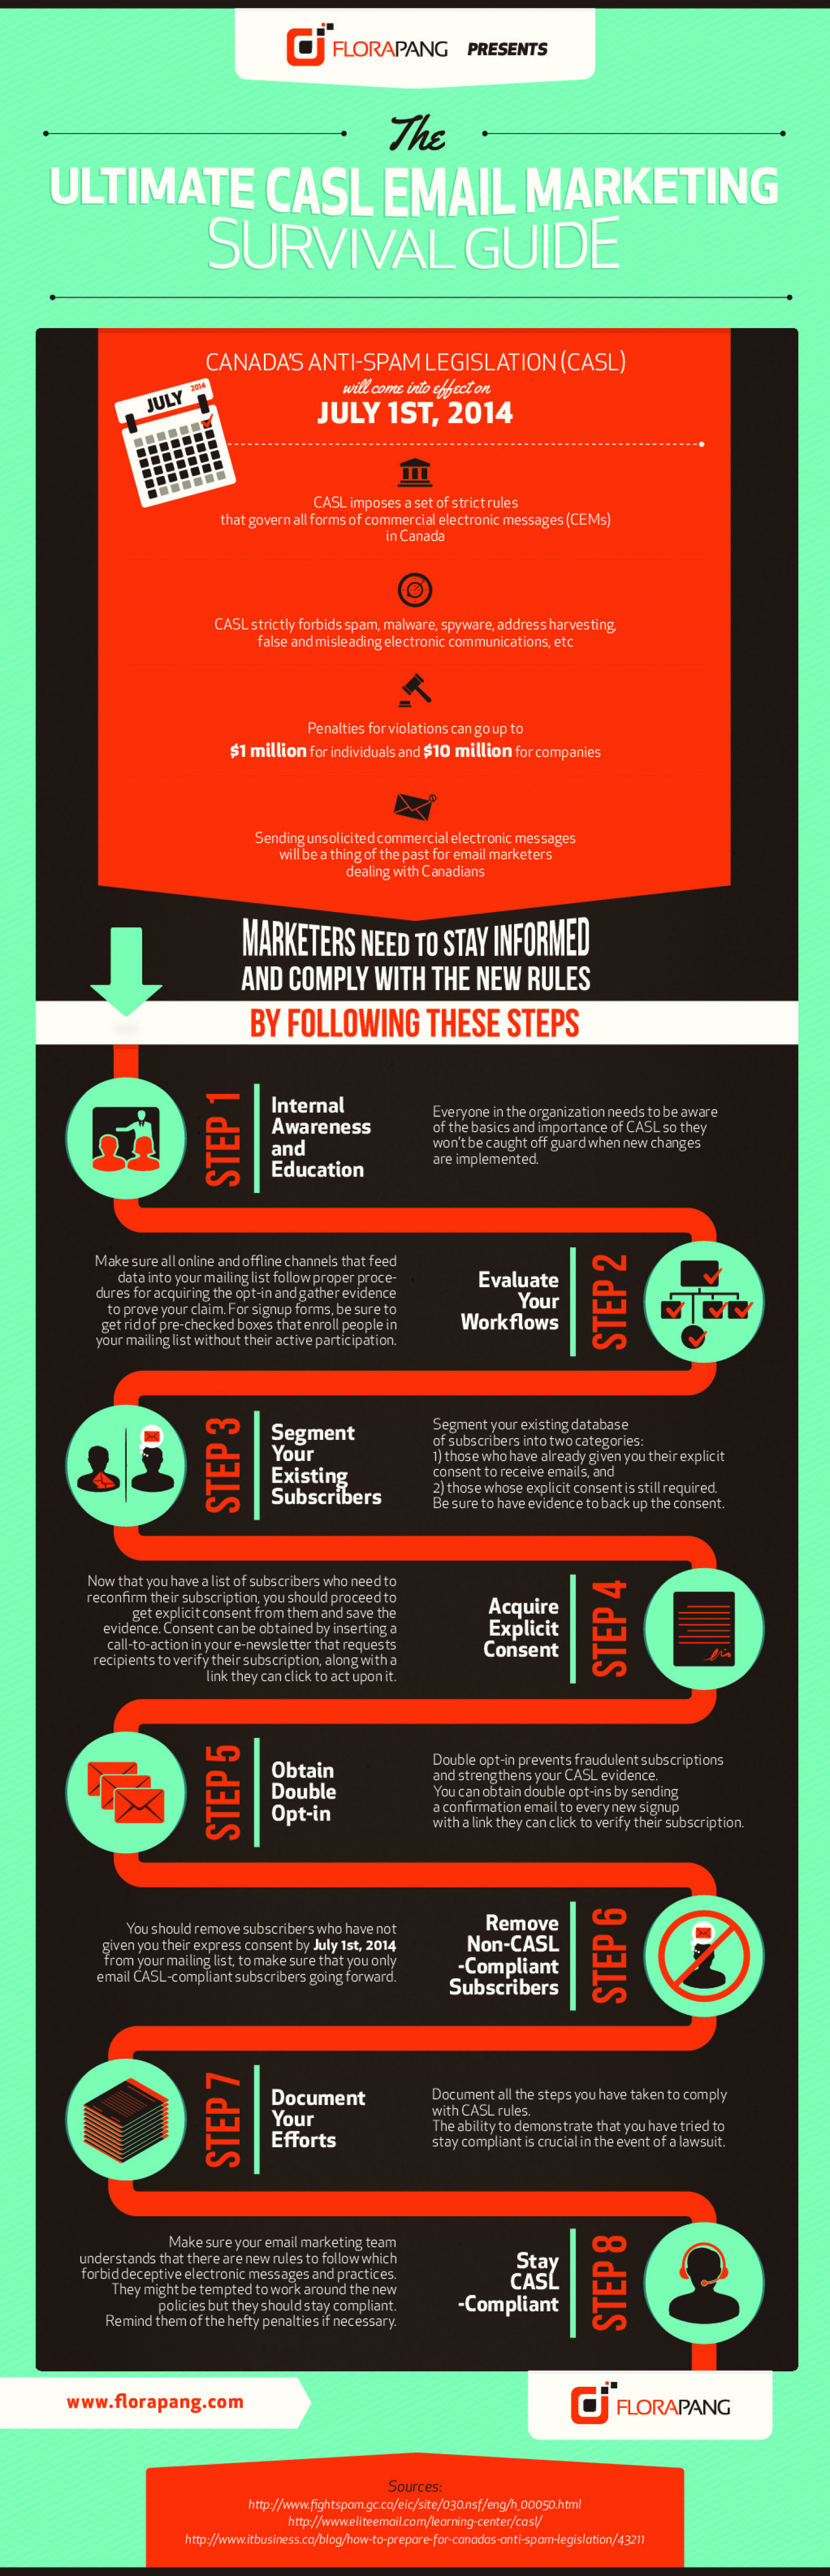 The Ultimate CASL Email Marketing Survival Guide Infographic